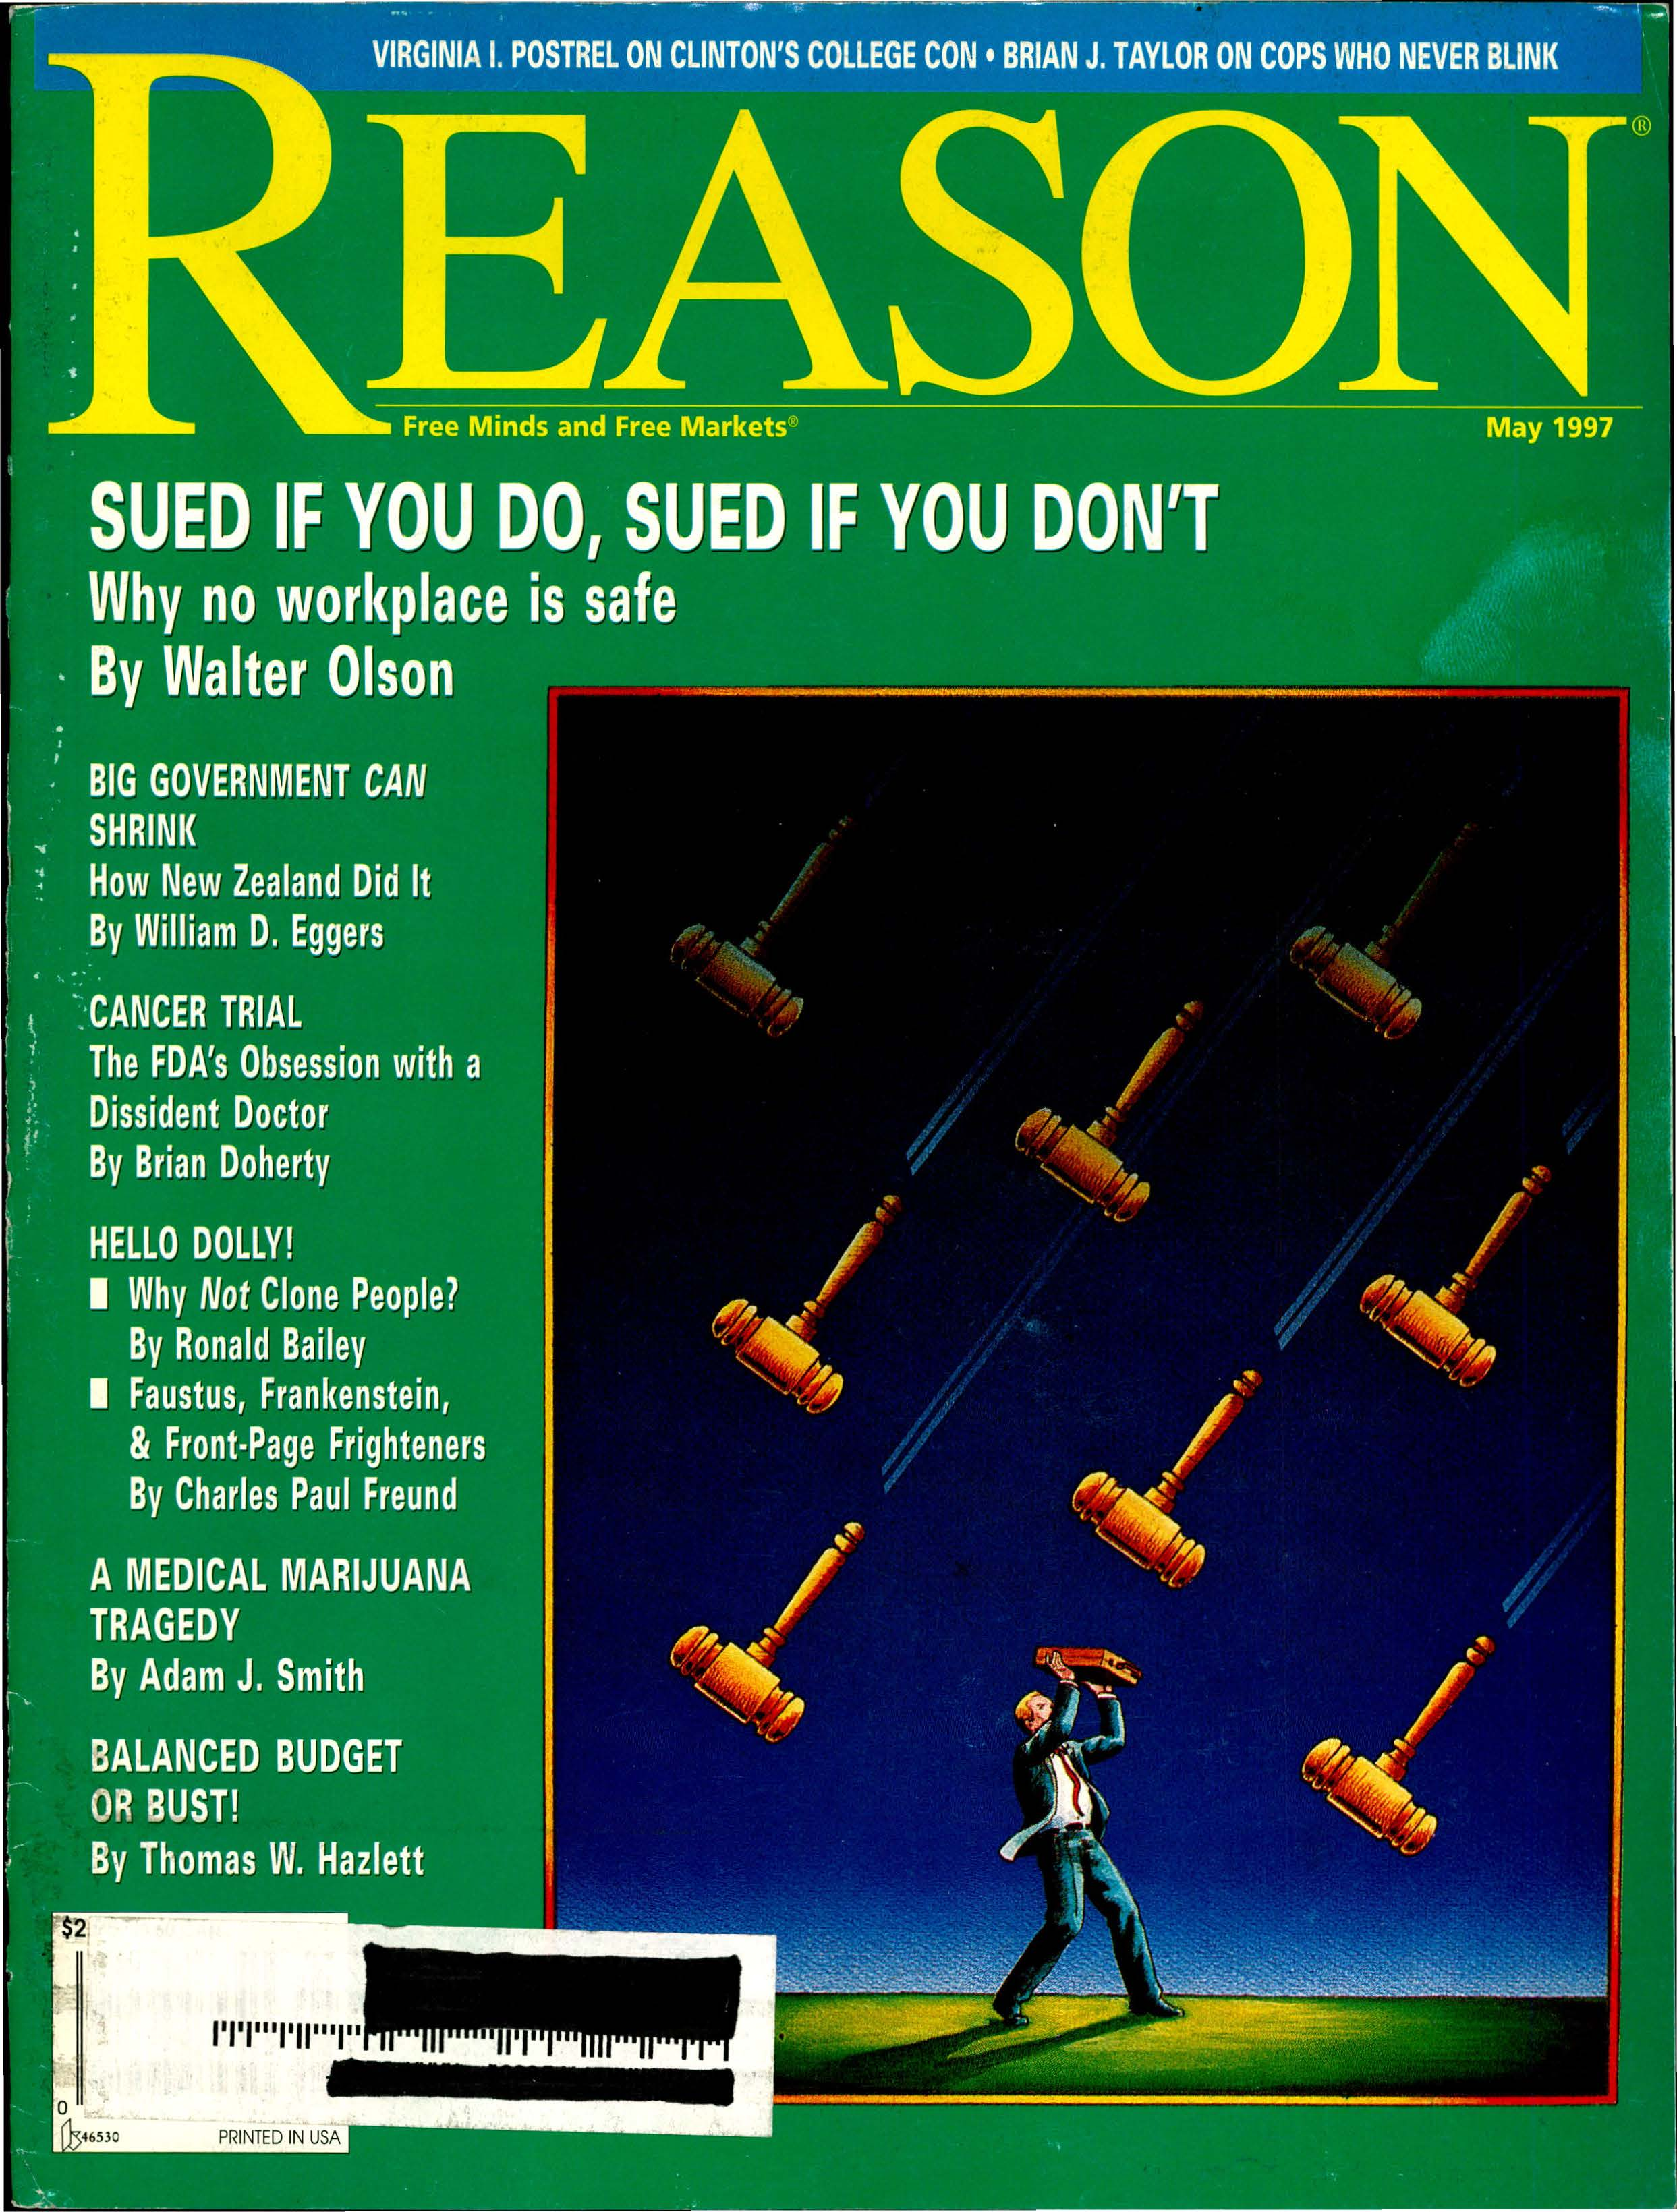 Reason Magazine, May 1997 cover image